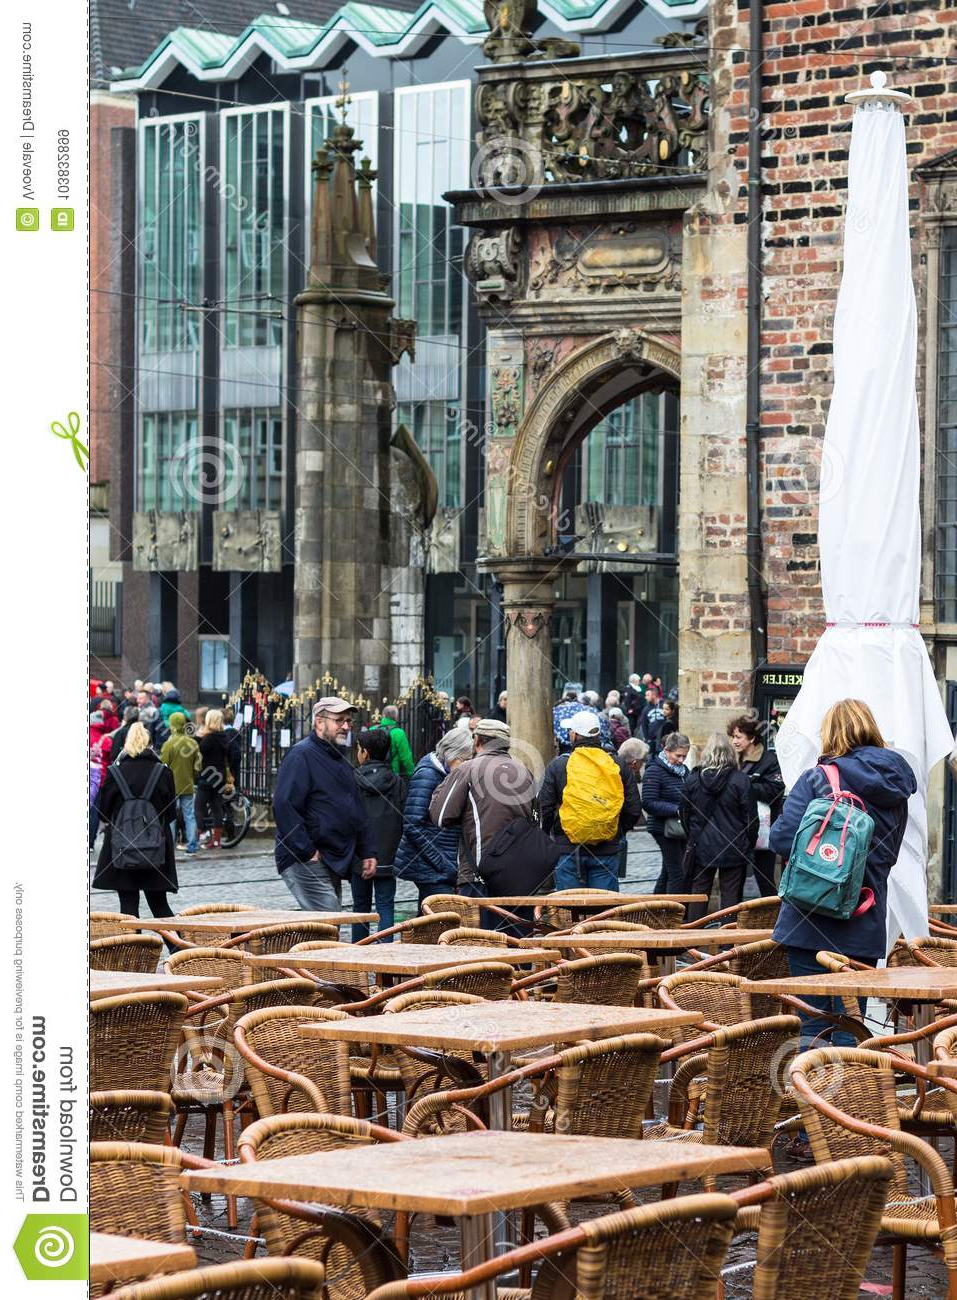 Recent Table Of Outdoor Cafe On Bremen Market Square Editorial Stock Image In Breen Market Umbrellas (View 20 of 20)